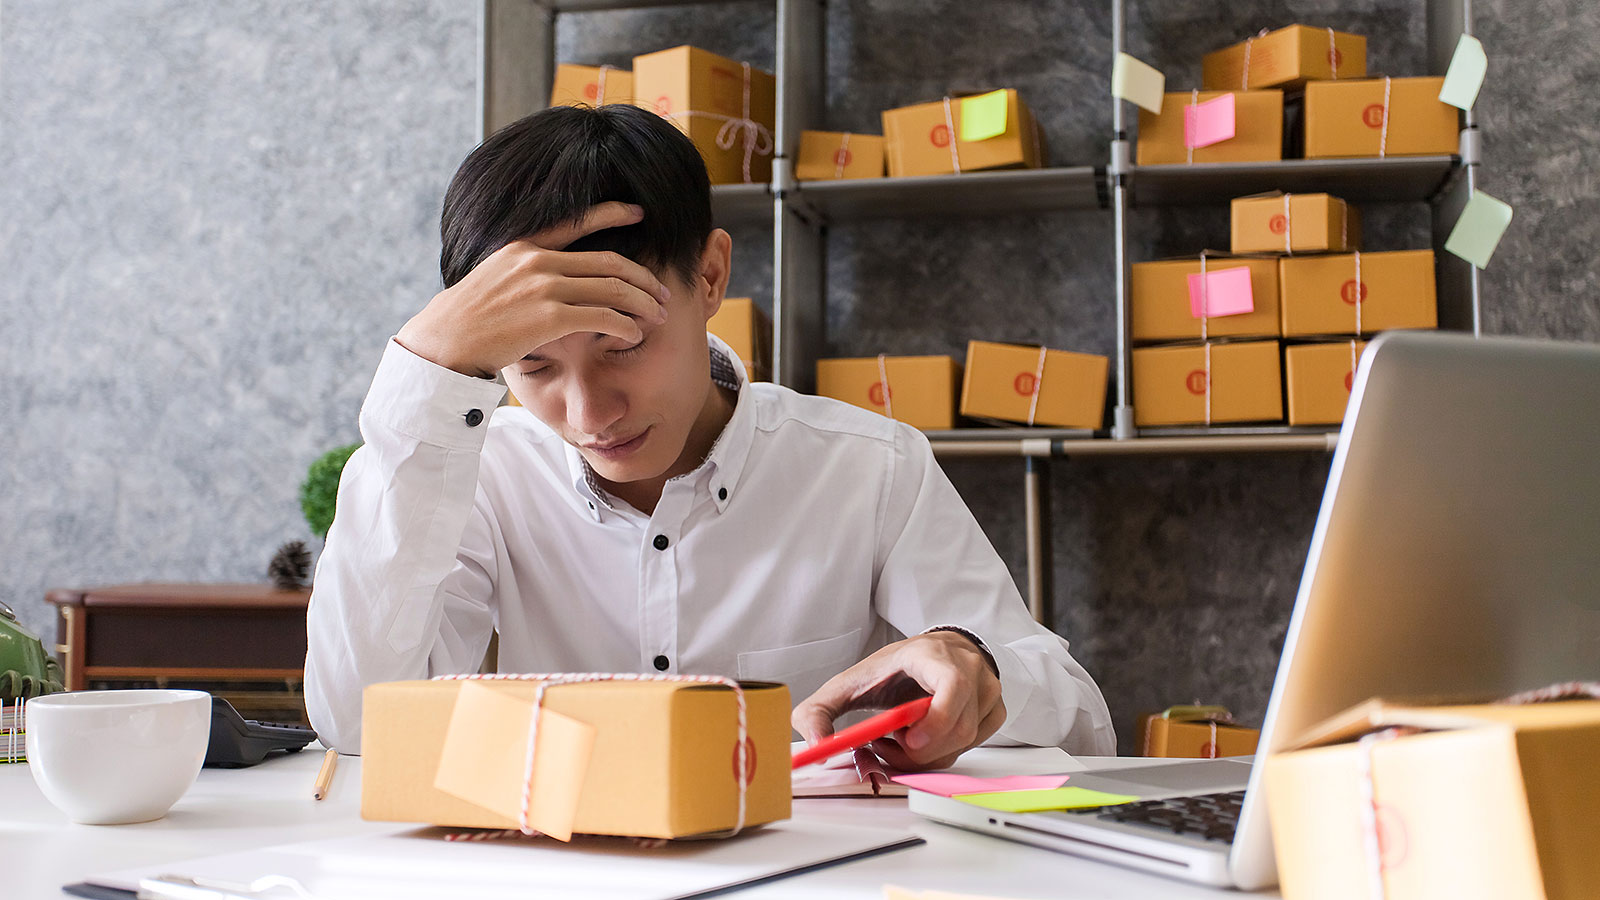 Two-thirds of business owners experience this mental health condition